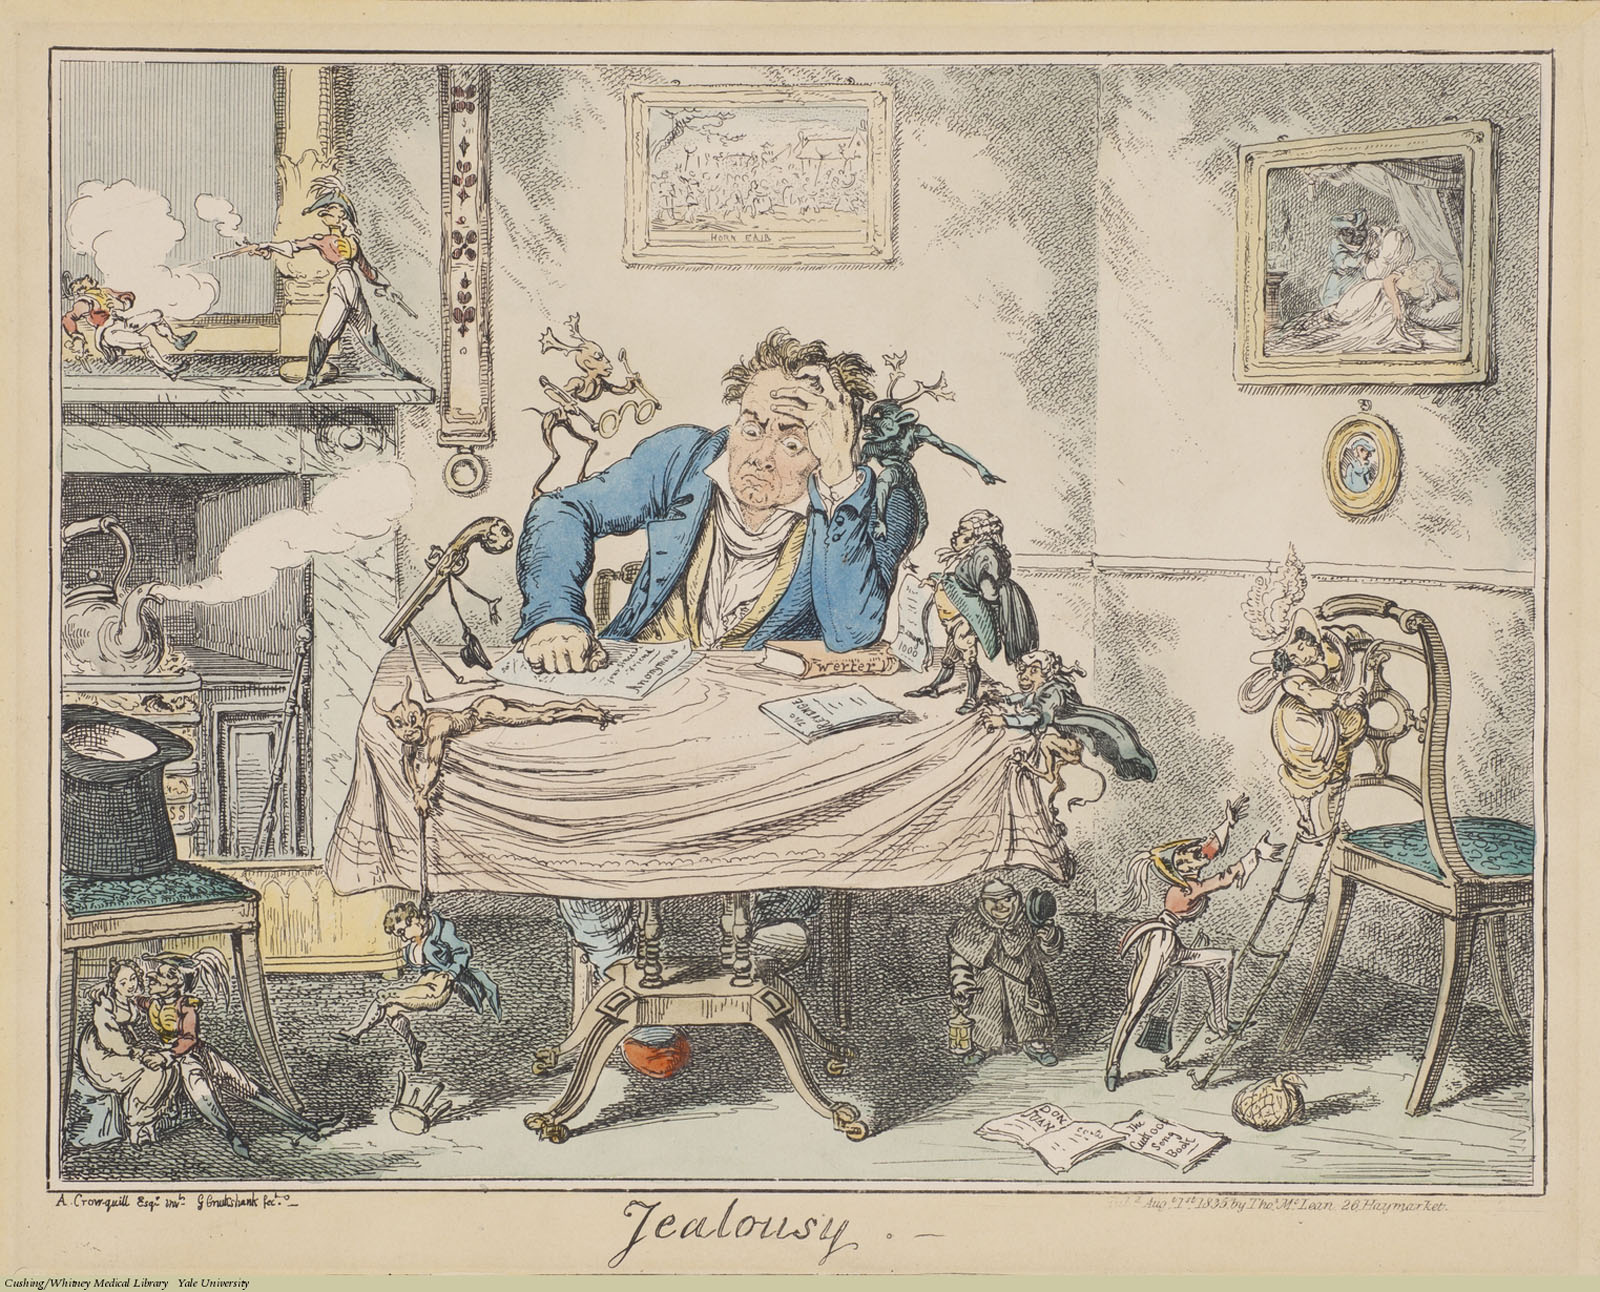 Jealousy, George Cruikshank, Etching coloured. Subject: Jealousy, Emotions, Devils & Demons.